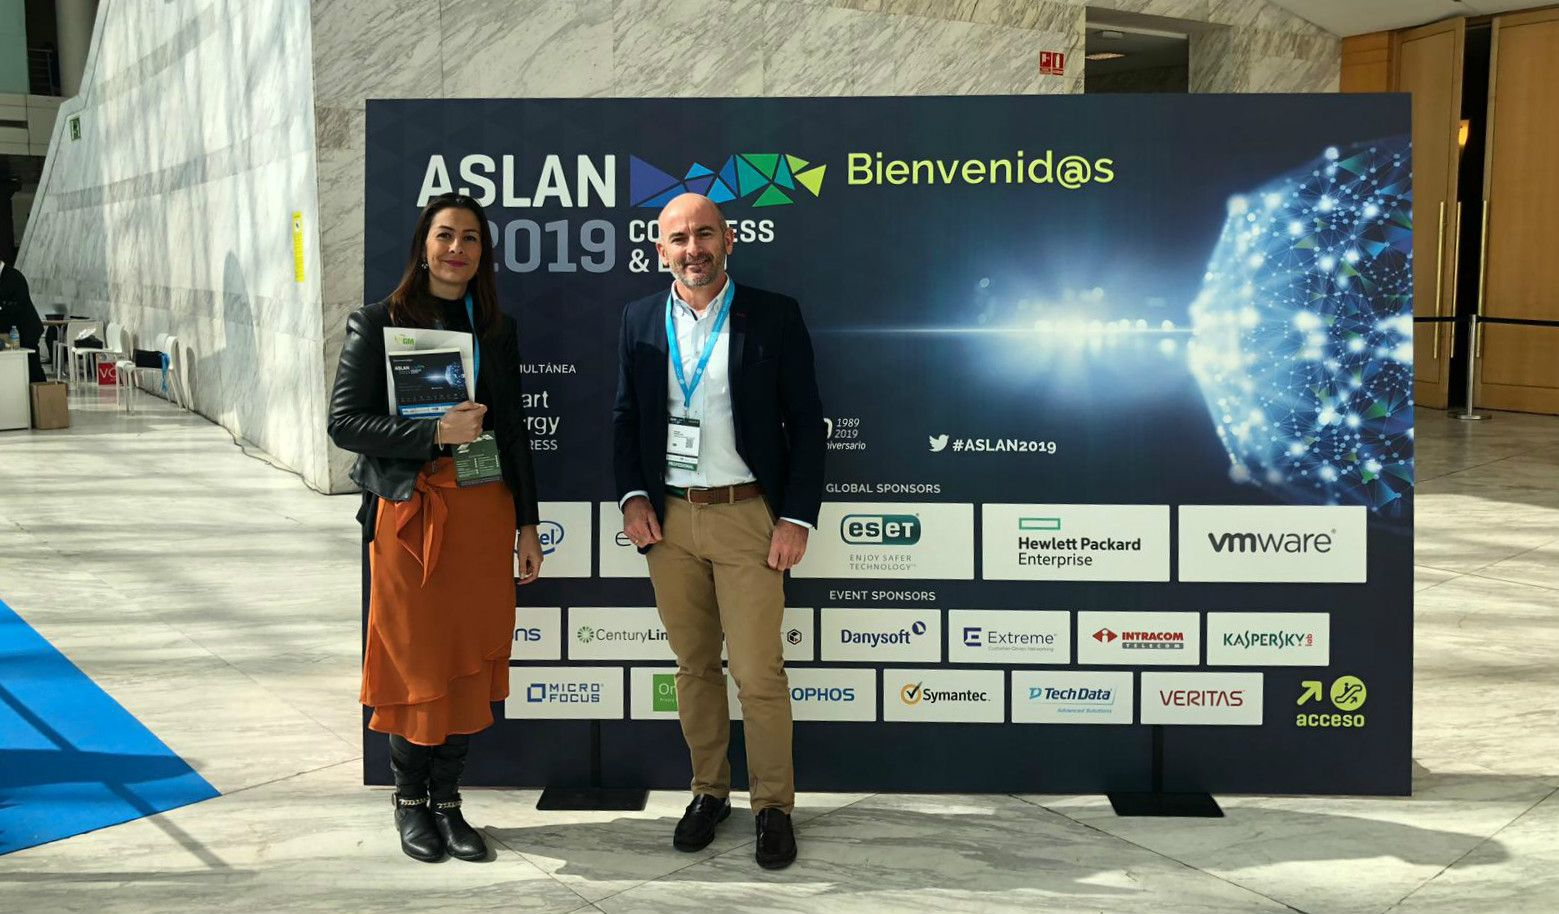 GM Technology, presente en el Congreso Expo Aslan 2019 dedicado a la Transformación Digital